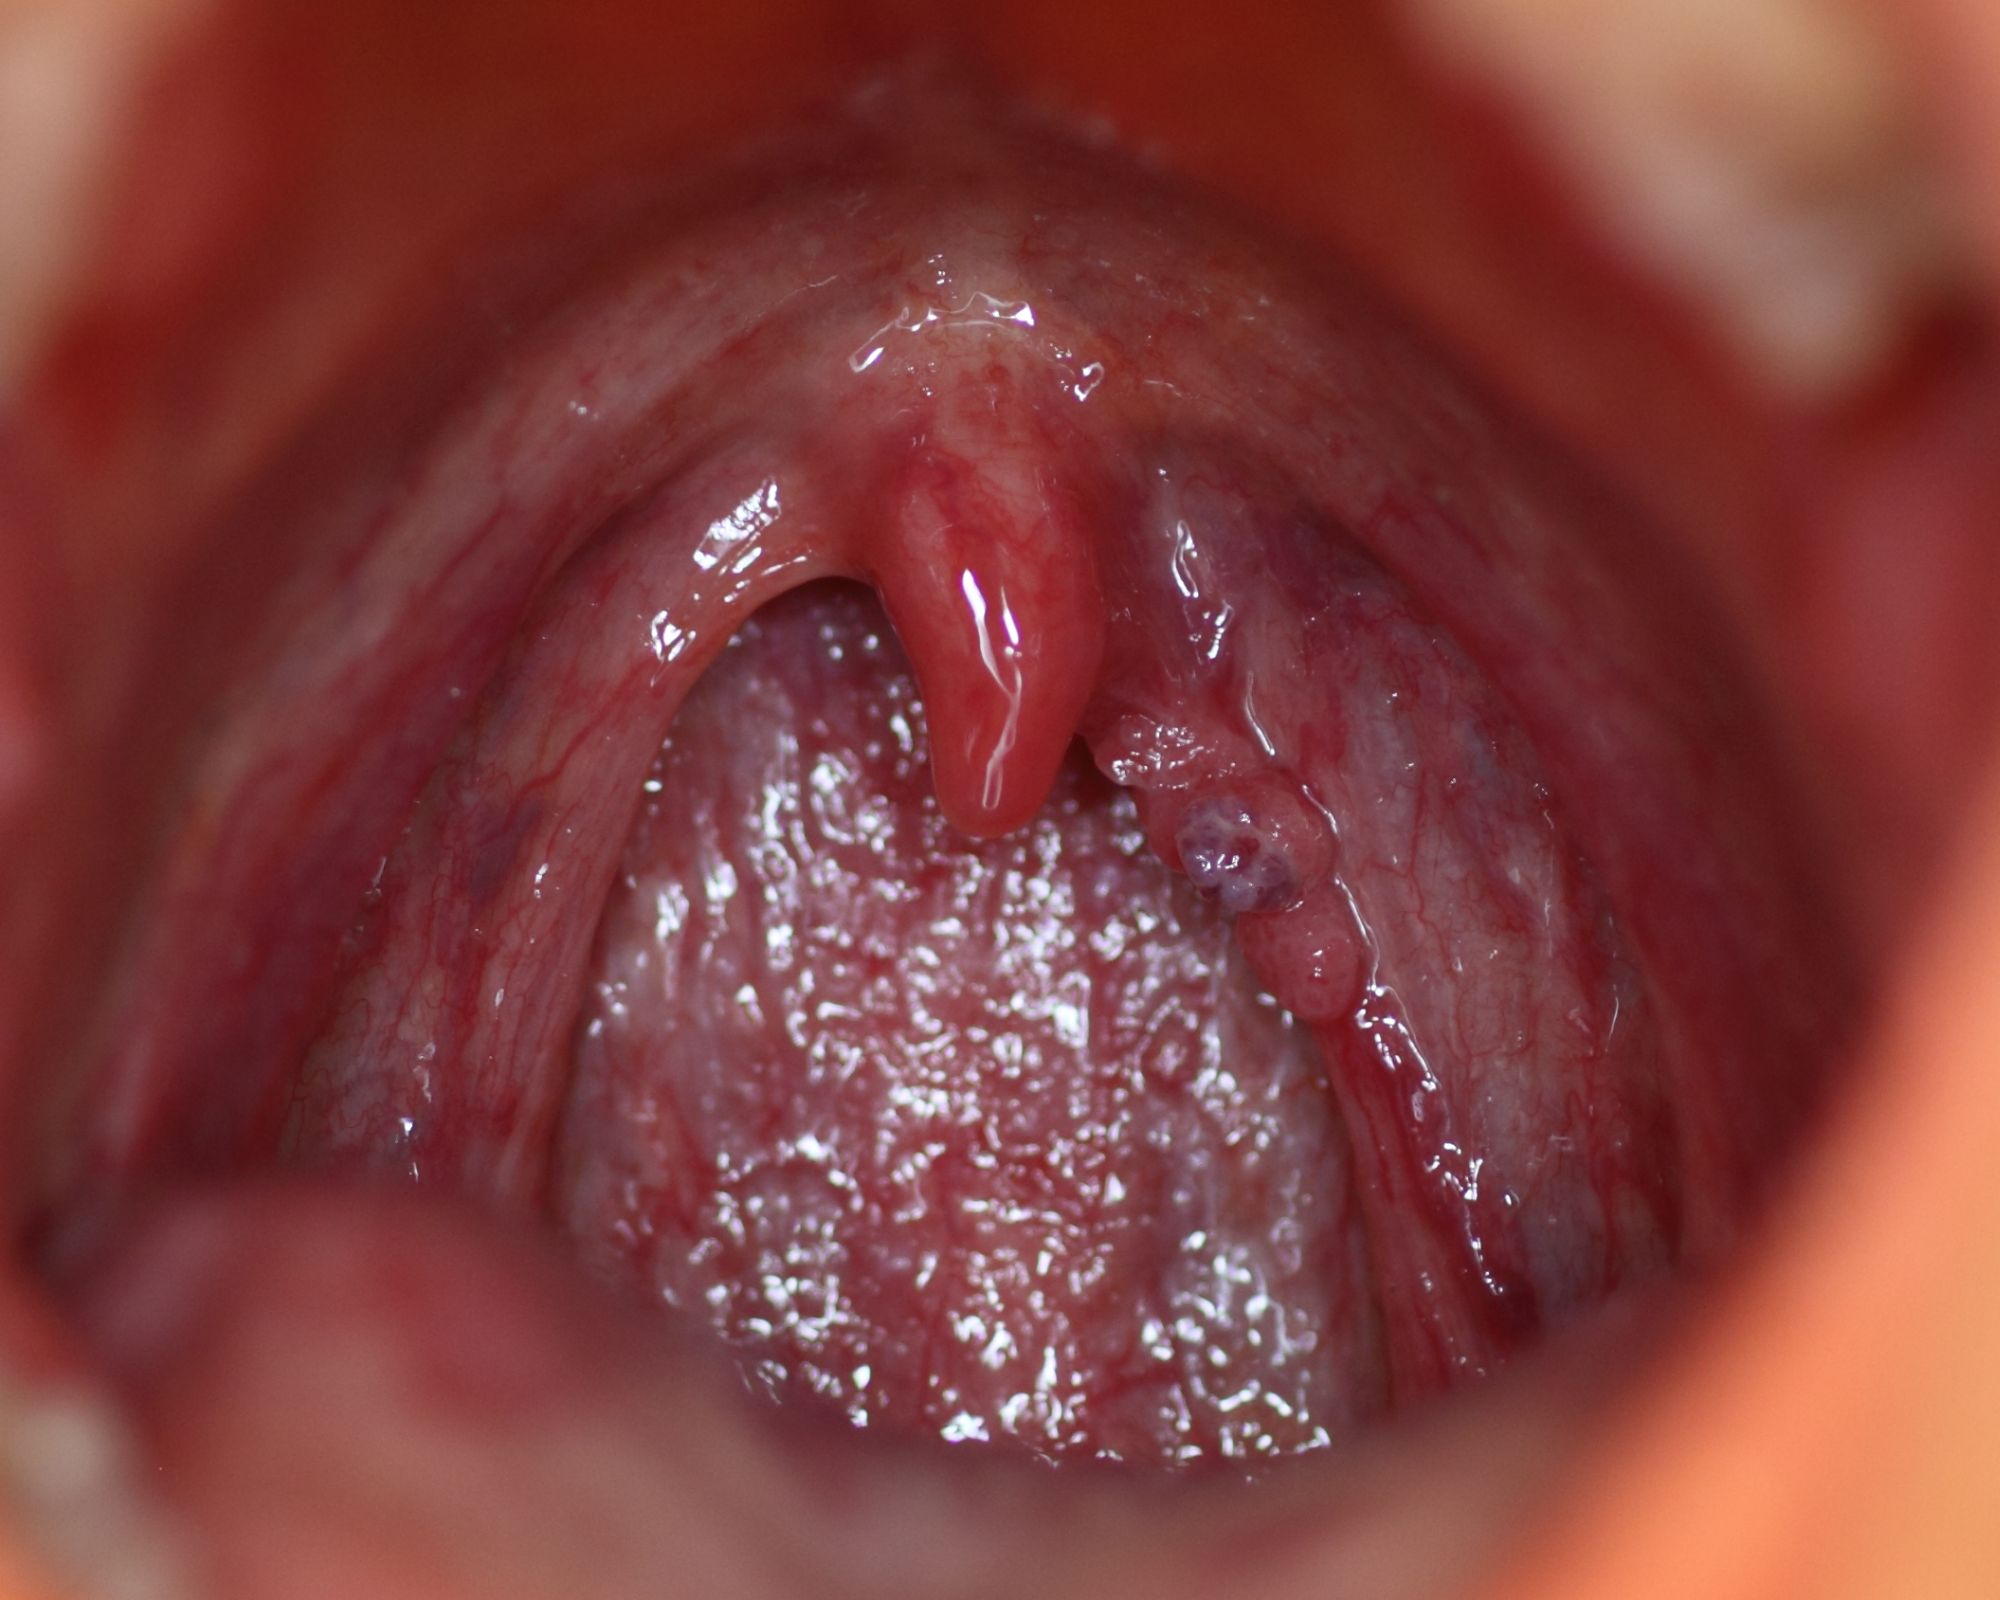 hpv papilloma in throat)